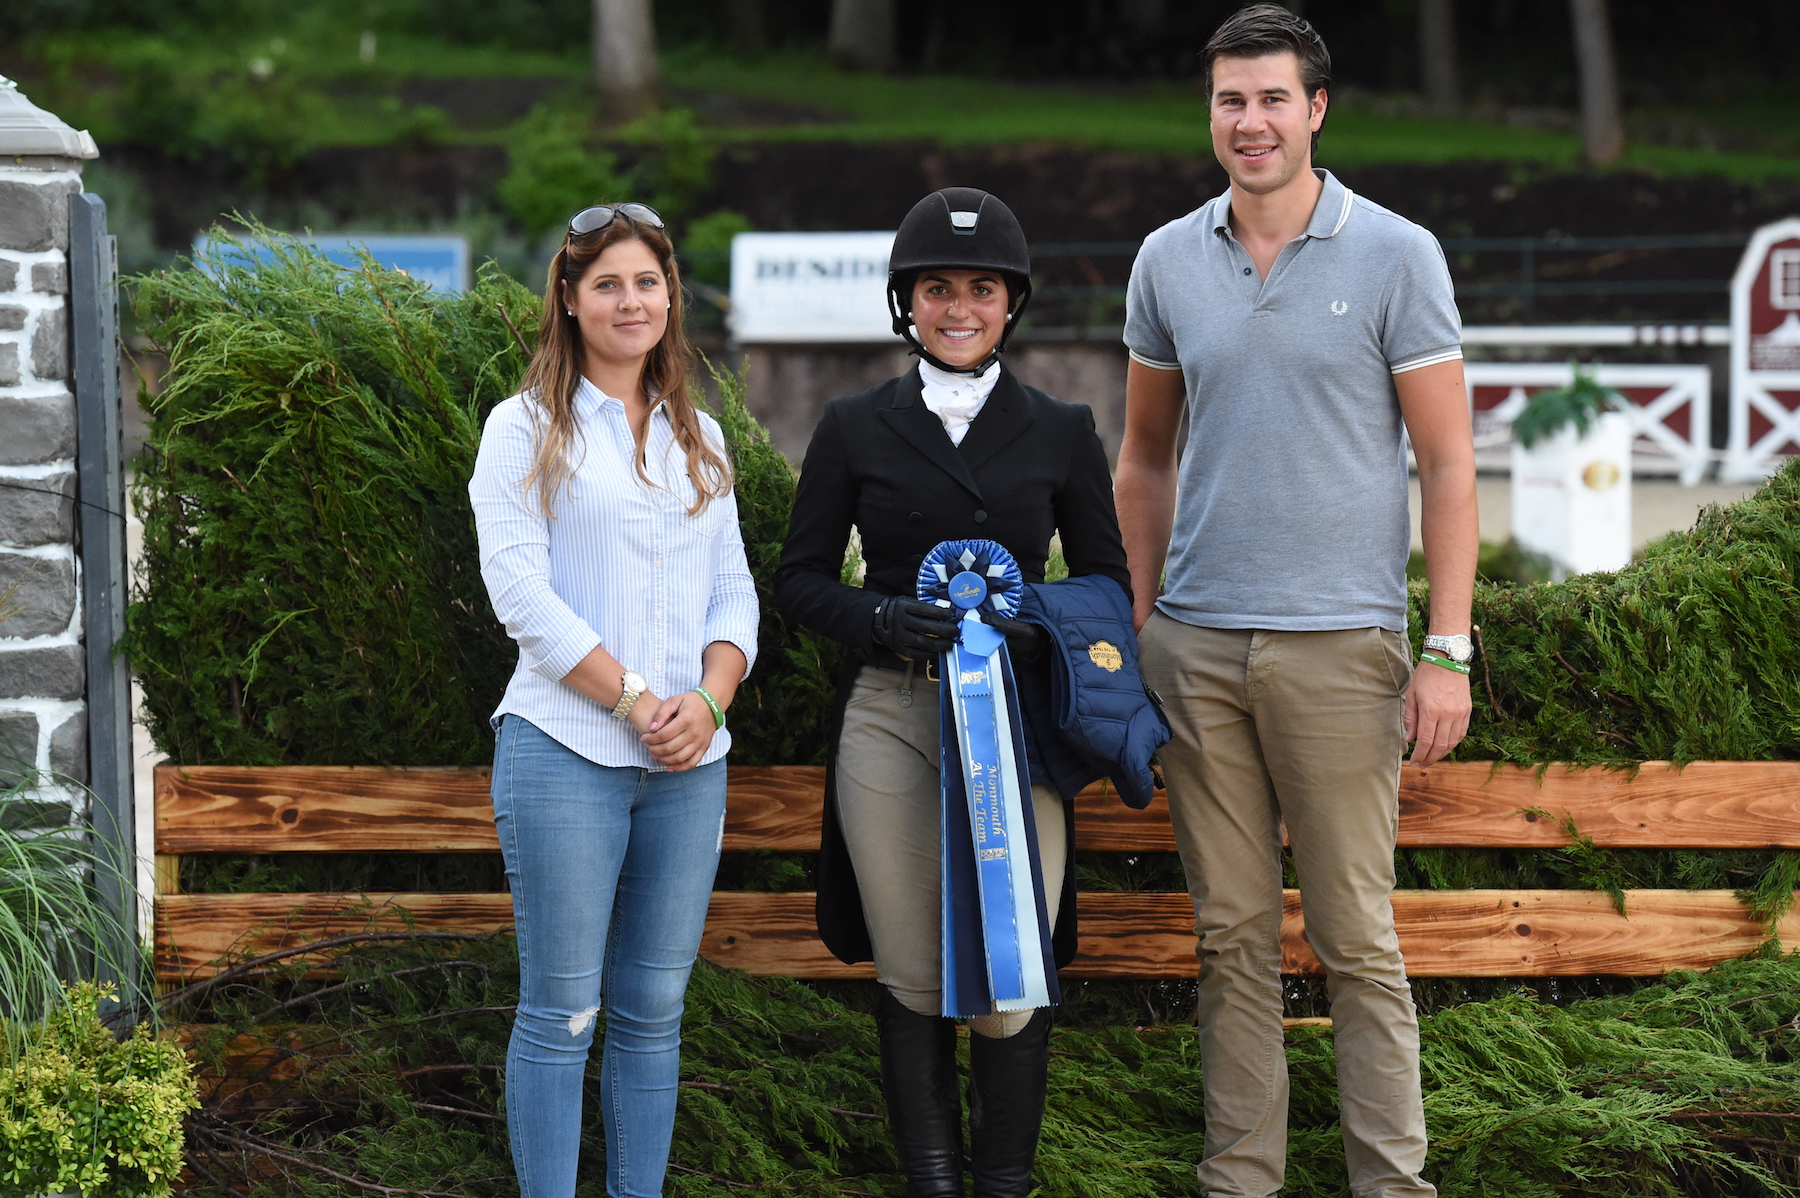 Maxime Tyteca and Niels Haesen from Stal de Eyckenhoeve presented the Top Trip of the Day to Alexandra Desiderio. Photo by Anne Gittins Photography